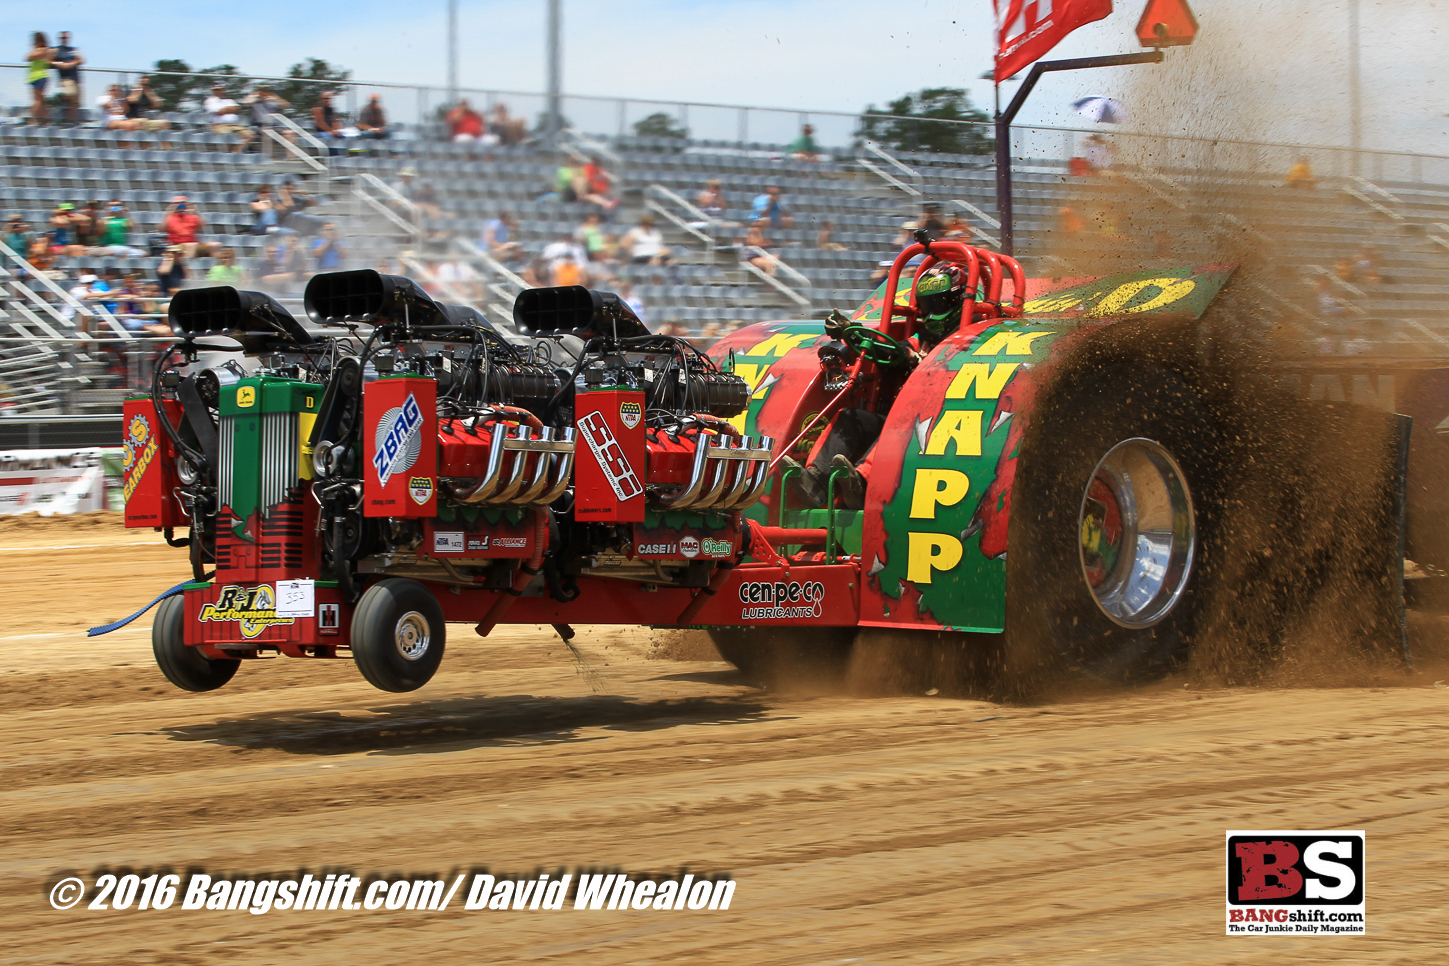 Pulling Tractors For Sale >> Tractor Pulling News - Pullingworld.com: NTPA GN Champions 2016